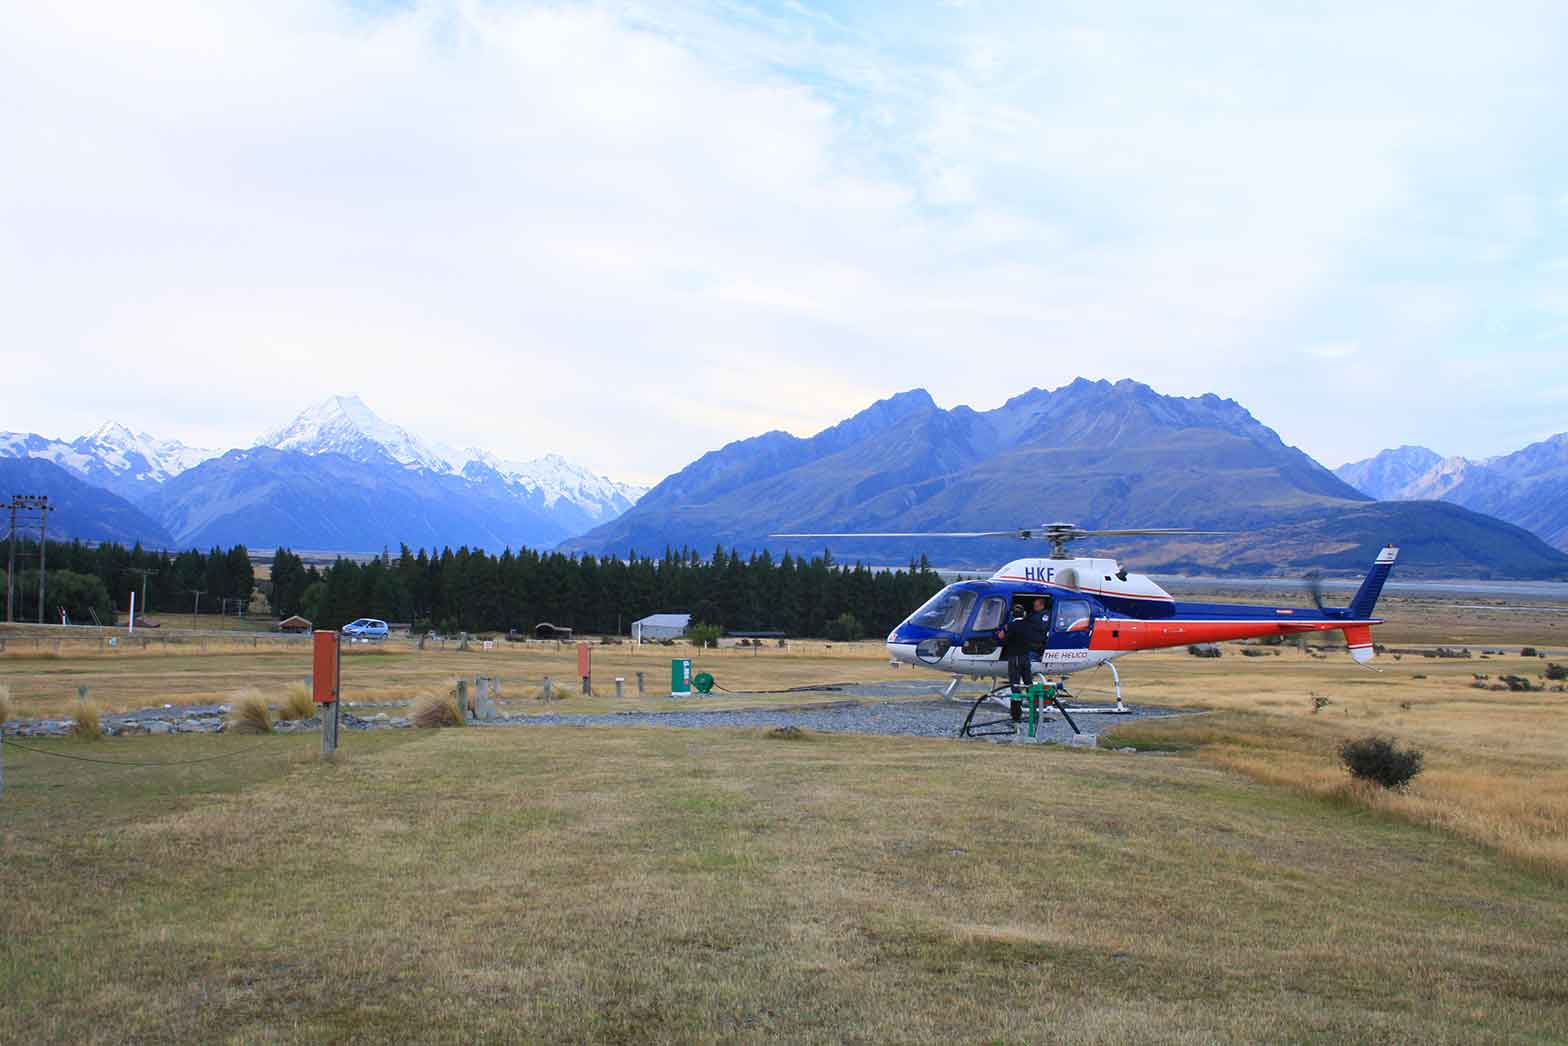 Preparing for a scenic helicopter flight in Franz Josef